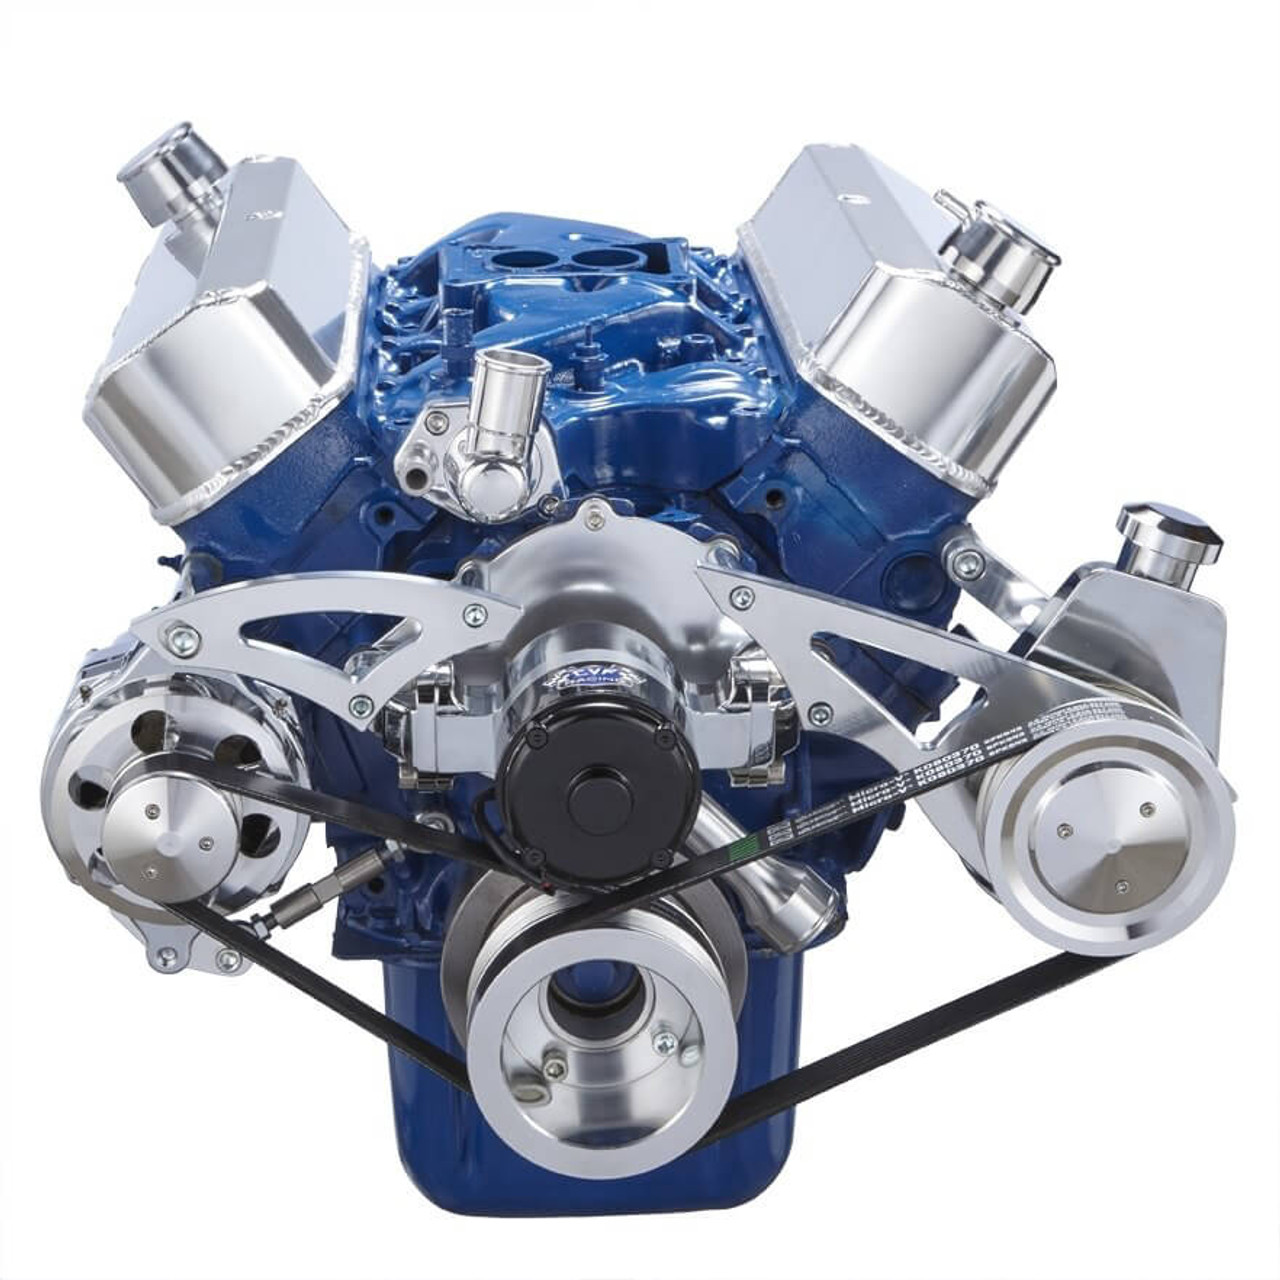 Ford 302 Windsor Serpentine System Ewp With Power Steering